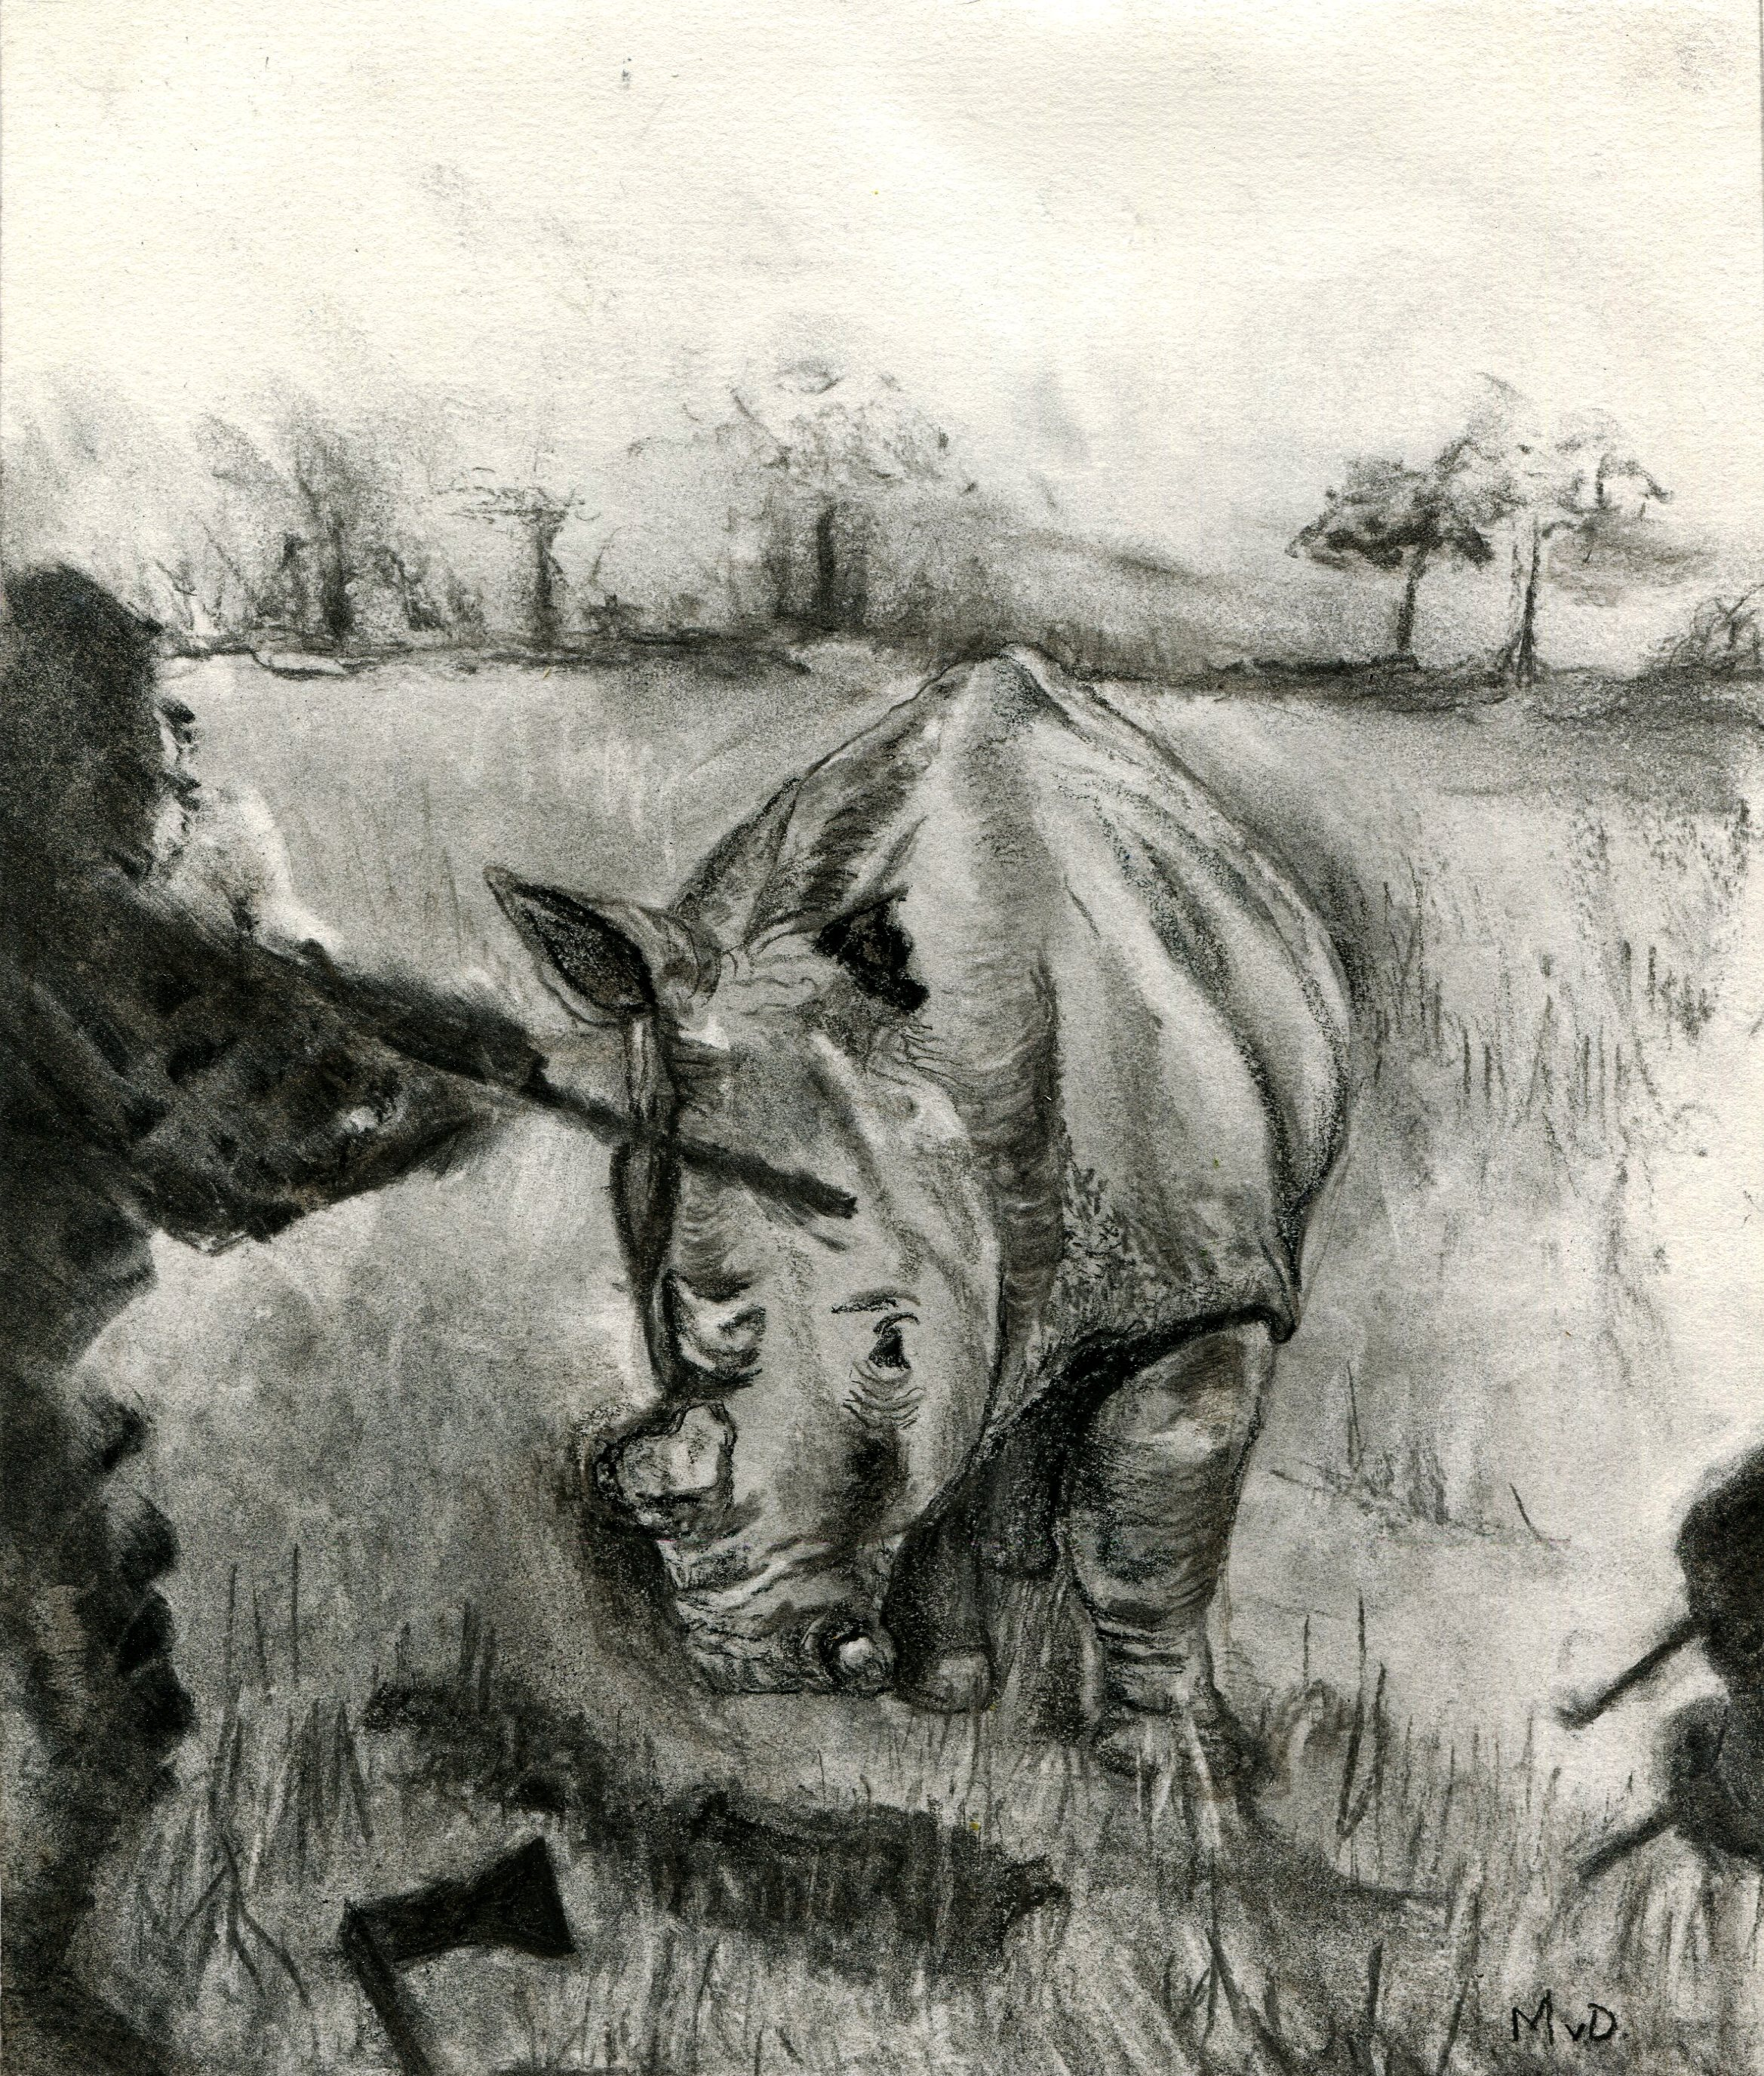 89A MONIQUE VAN DEVENTER, UNTITLED, CHARCOAL ON PAPER